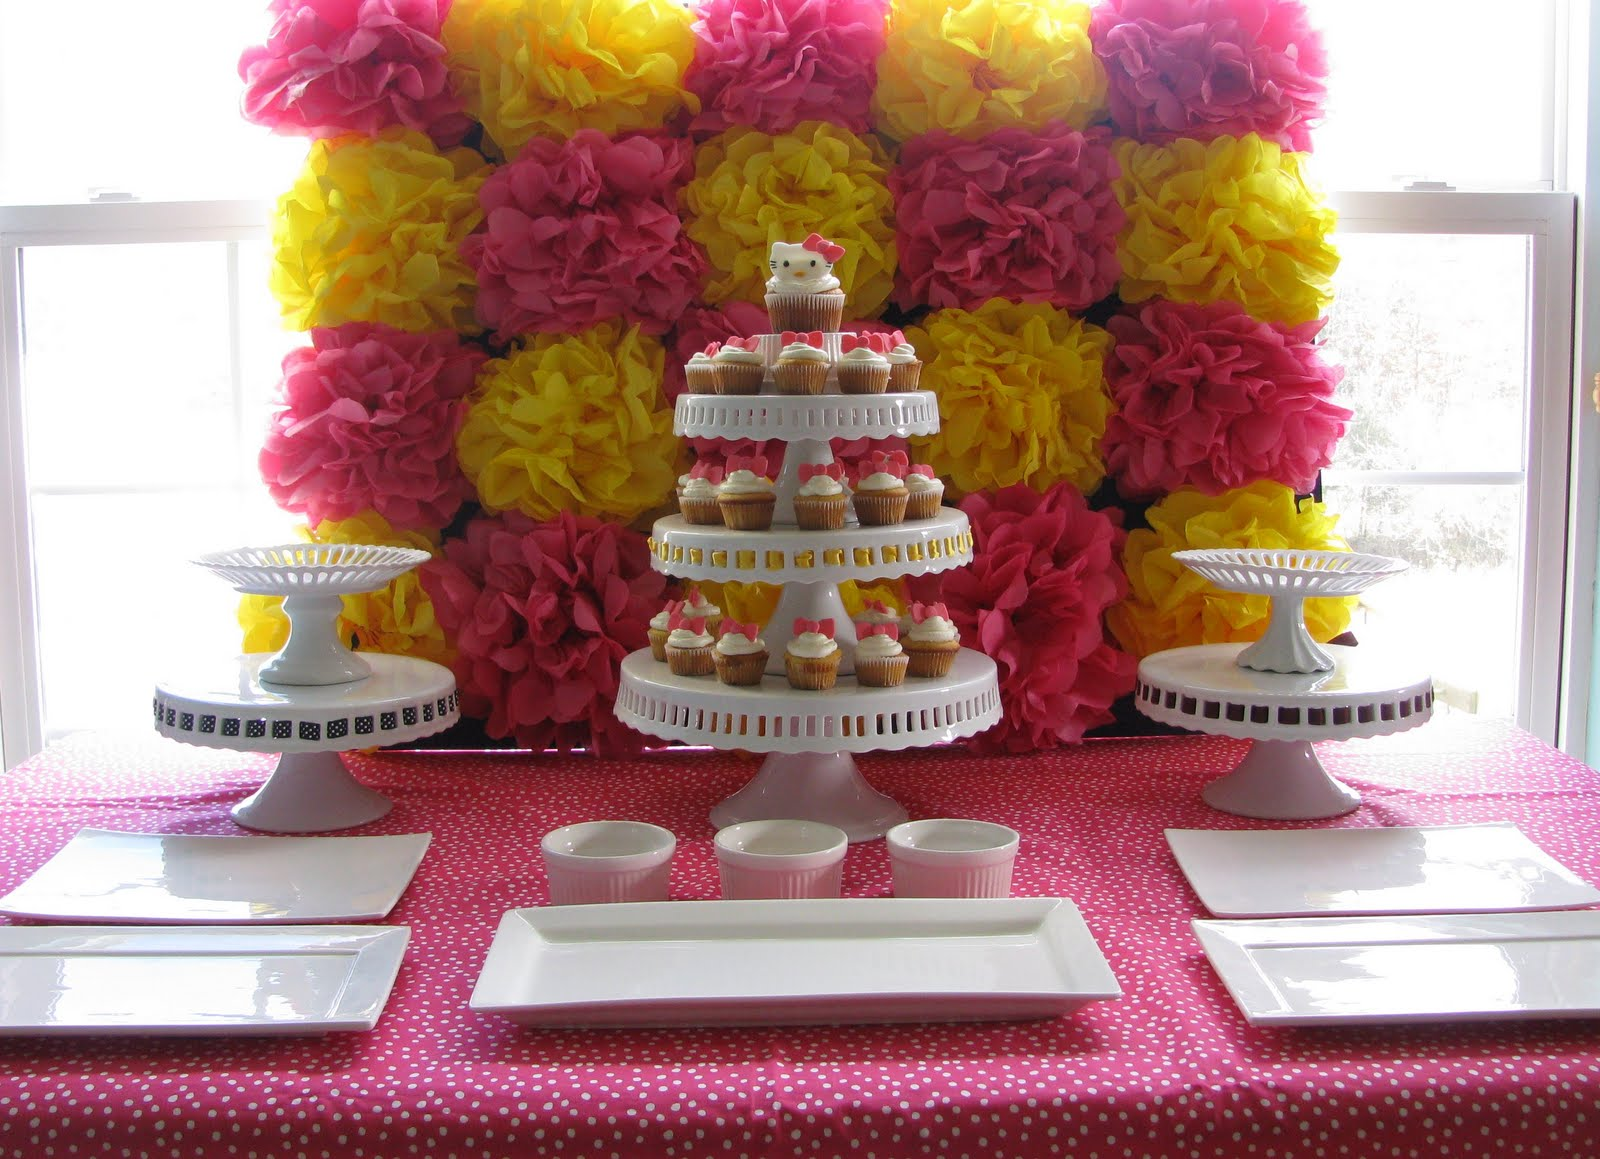 Pom Pom Party Wall Decor for Birthdays